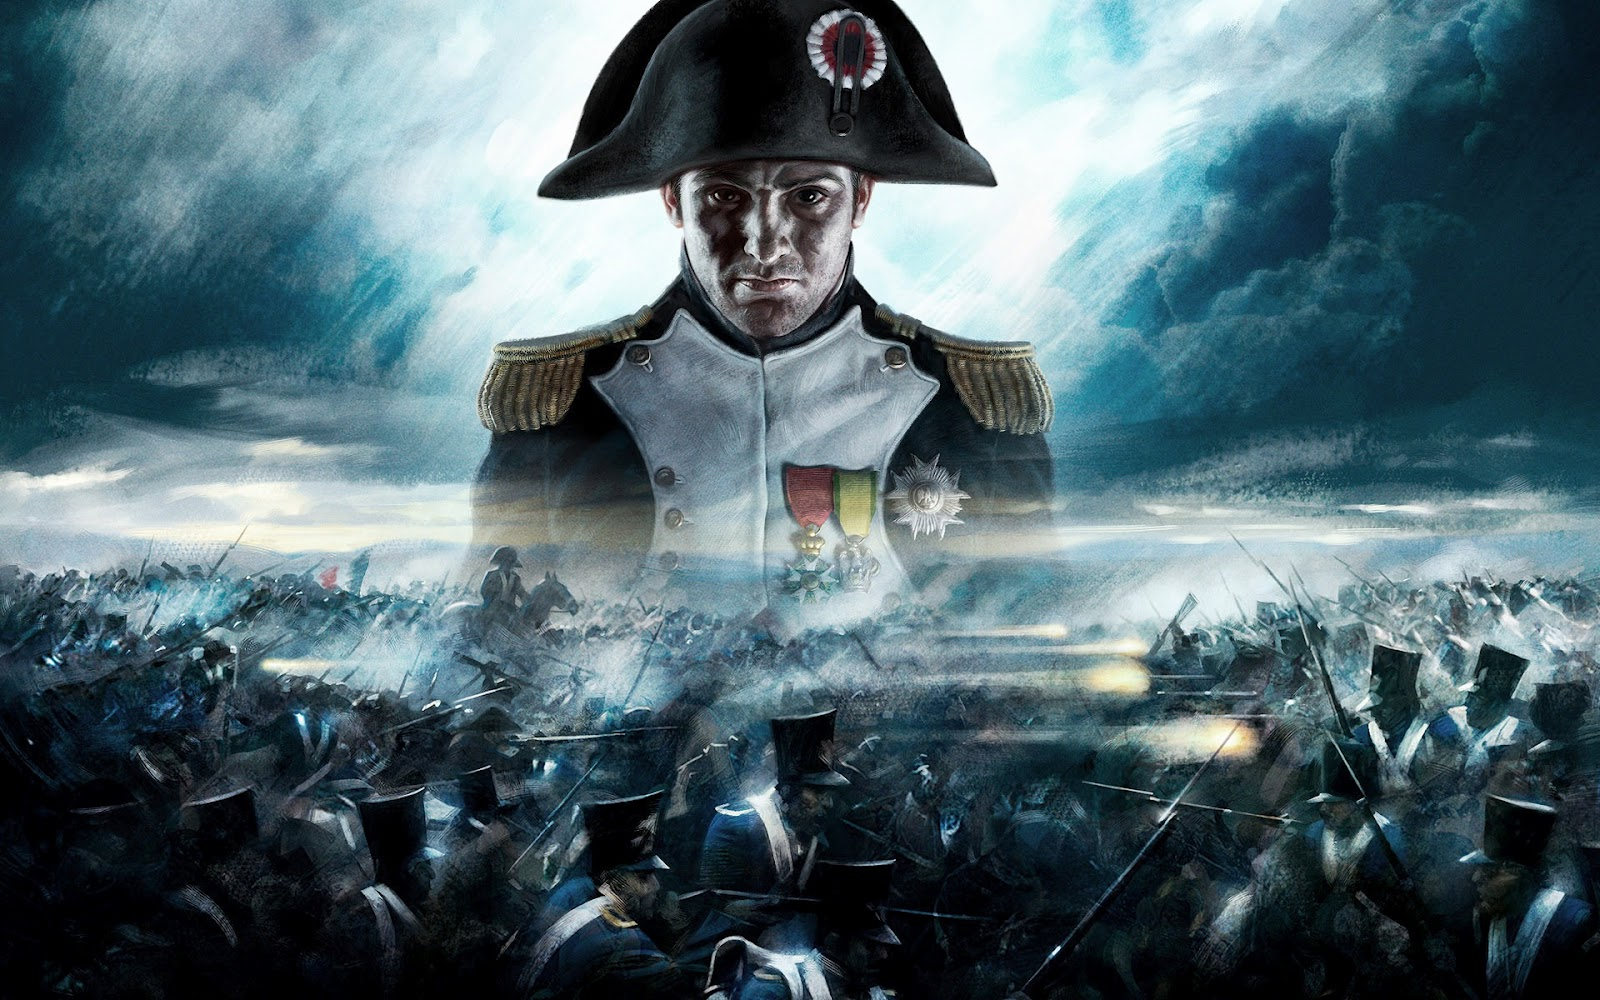 Empire Total War Wallpapers and Theme for Windows 7   extreme 7 1600x1000